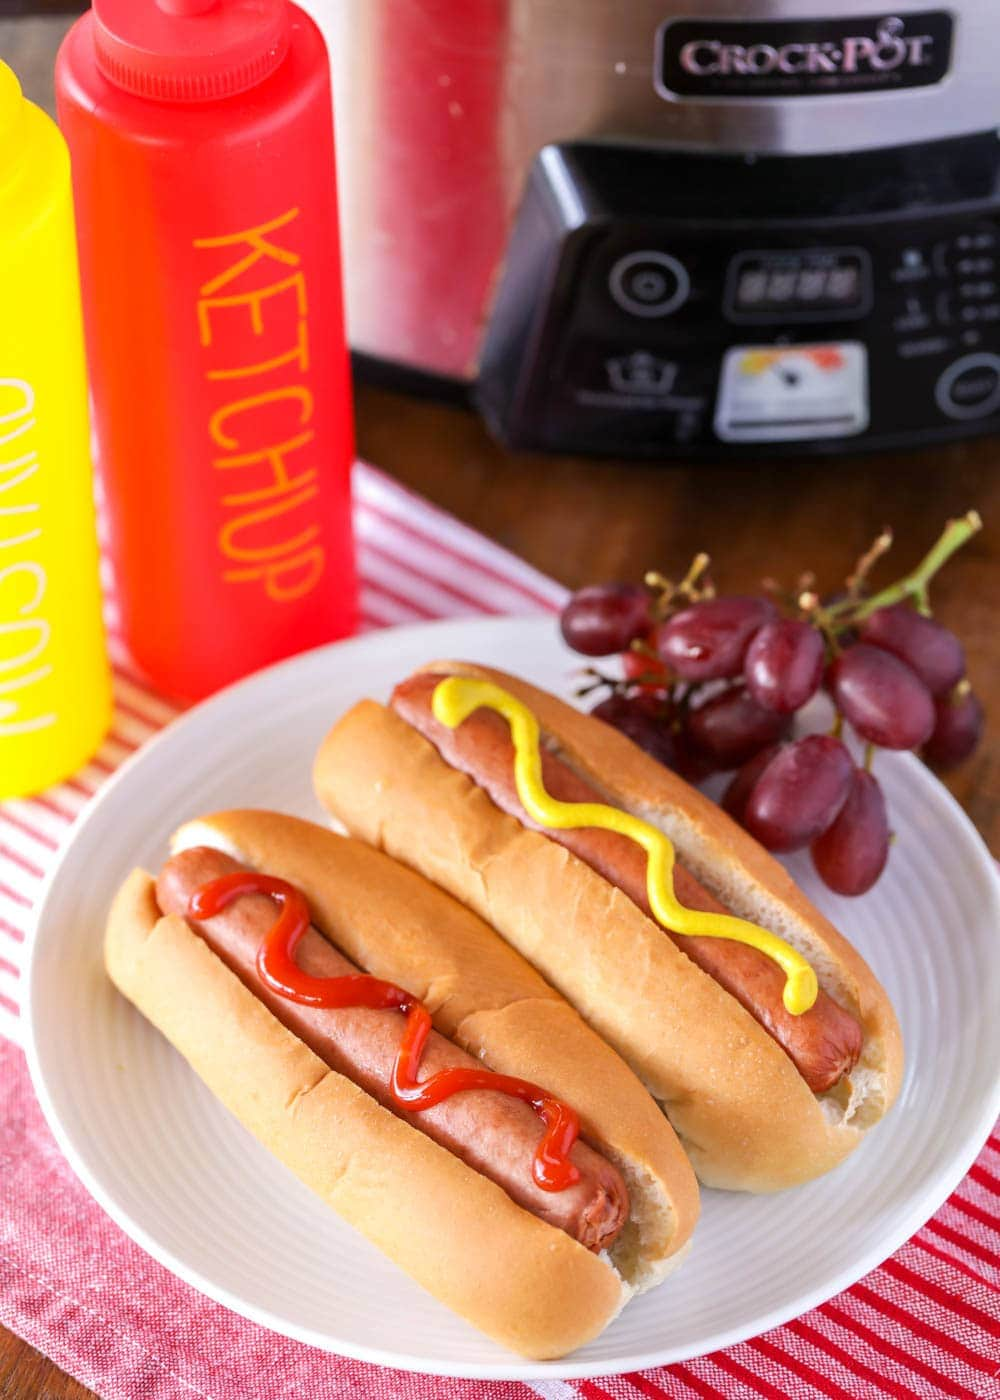 Crock pot hot dogs on a plate topped with ketchup and mustard